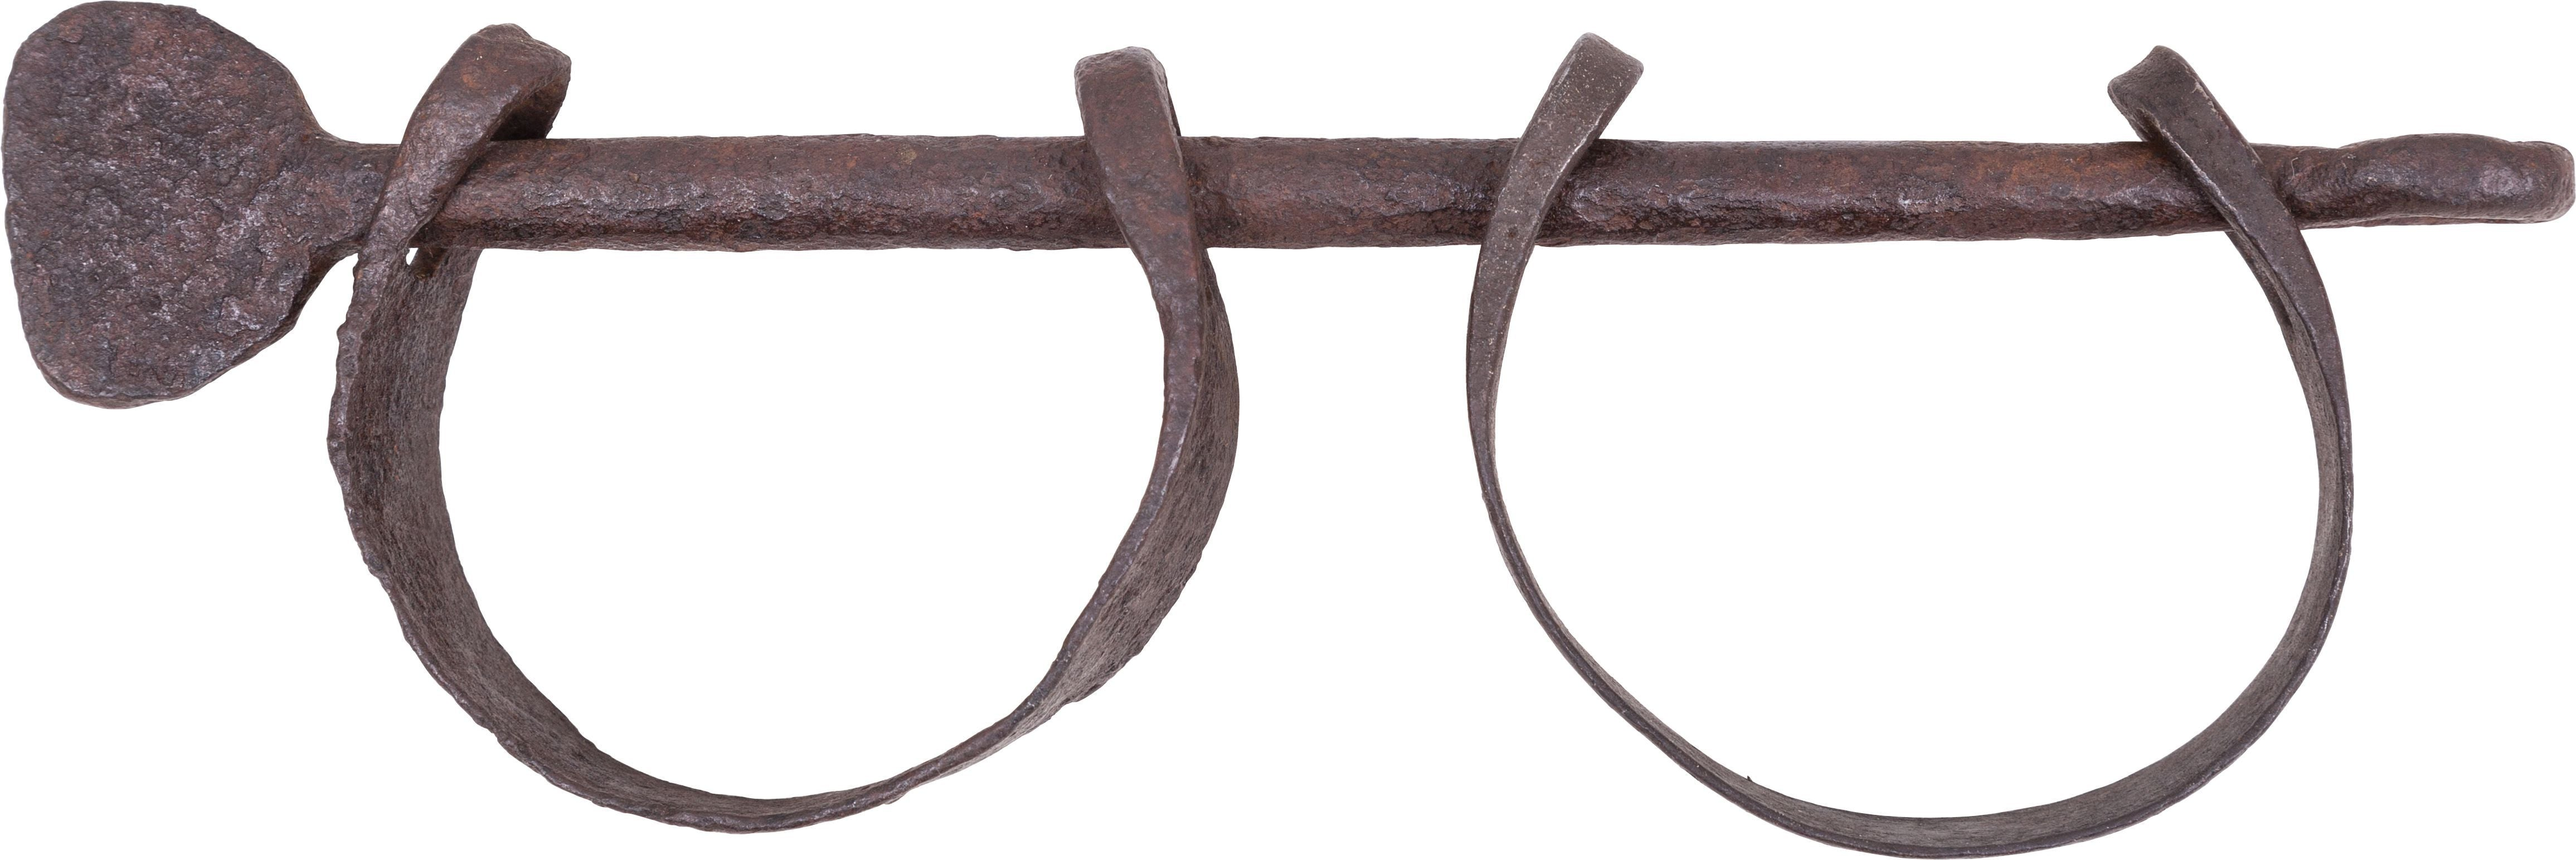 EXTREMELY RARE PAIR OF LEG IRONS (SHACKLES) FROM THE SLAVE TRADE - Fagan Arms